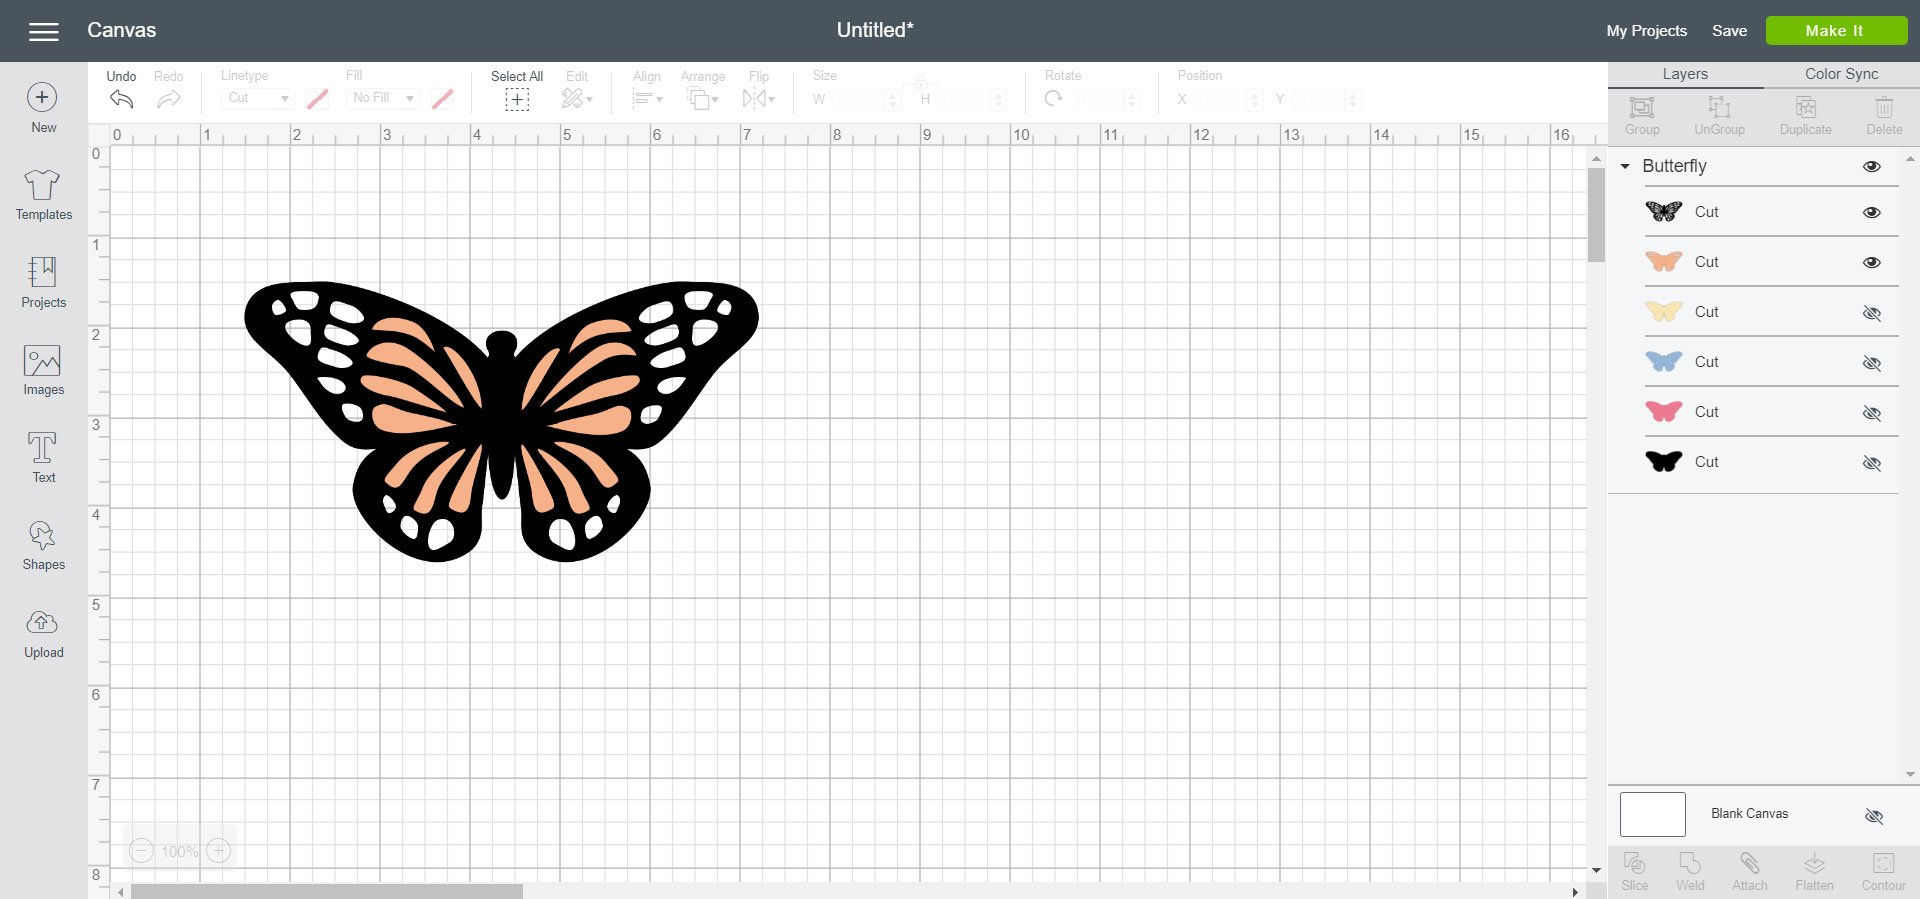 Butterfly image in Cricut Design Space